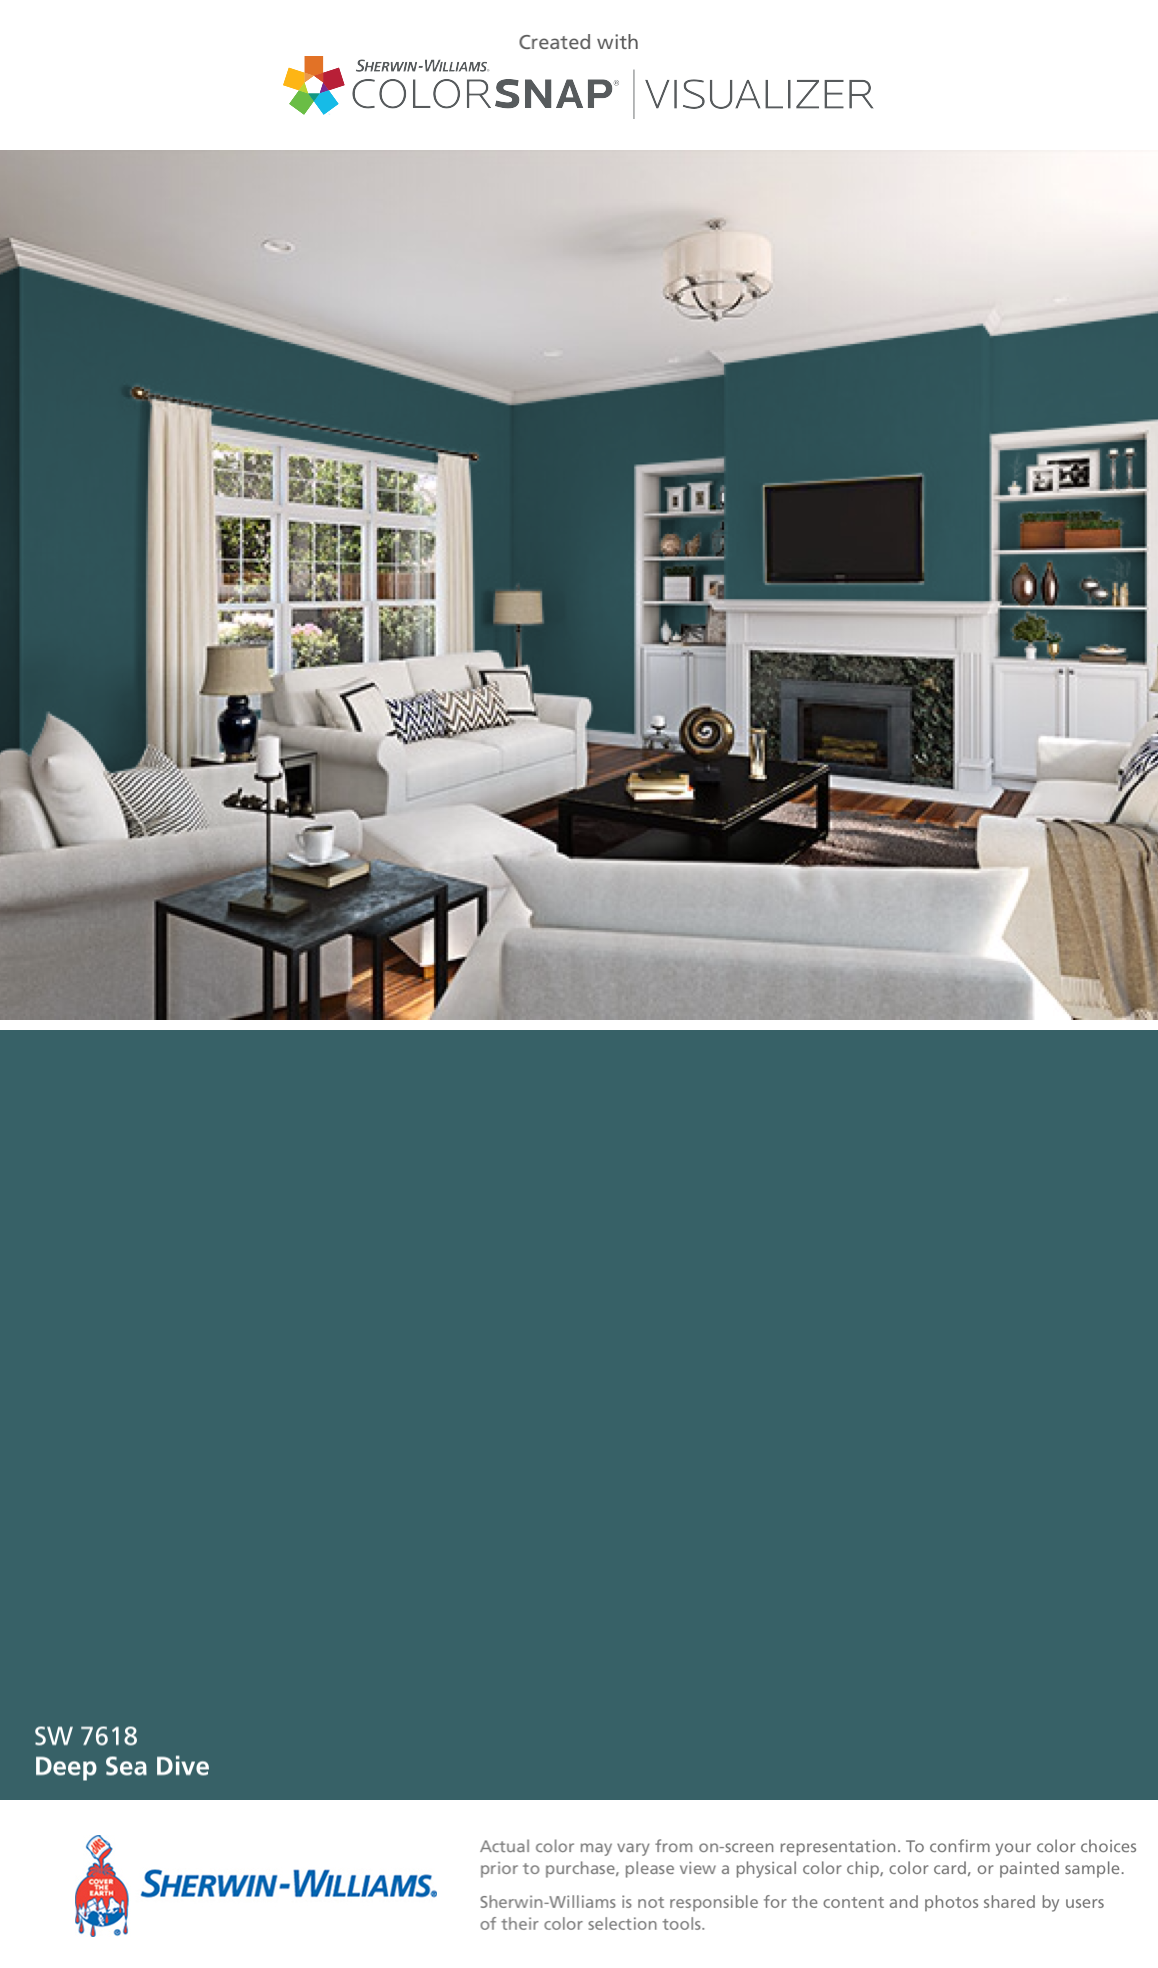 I Found This Color With Colorsnap Visualizer For Iphone By Sherwin Williams Deep Sea Dive Sw 7618